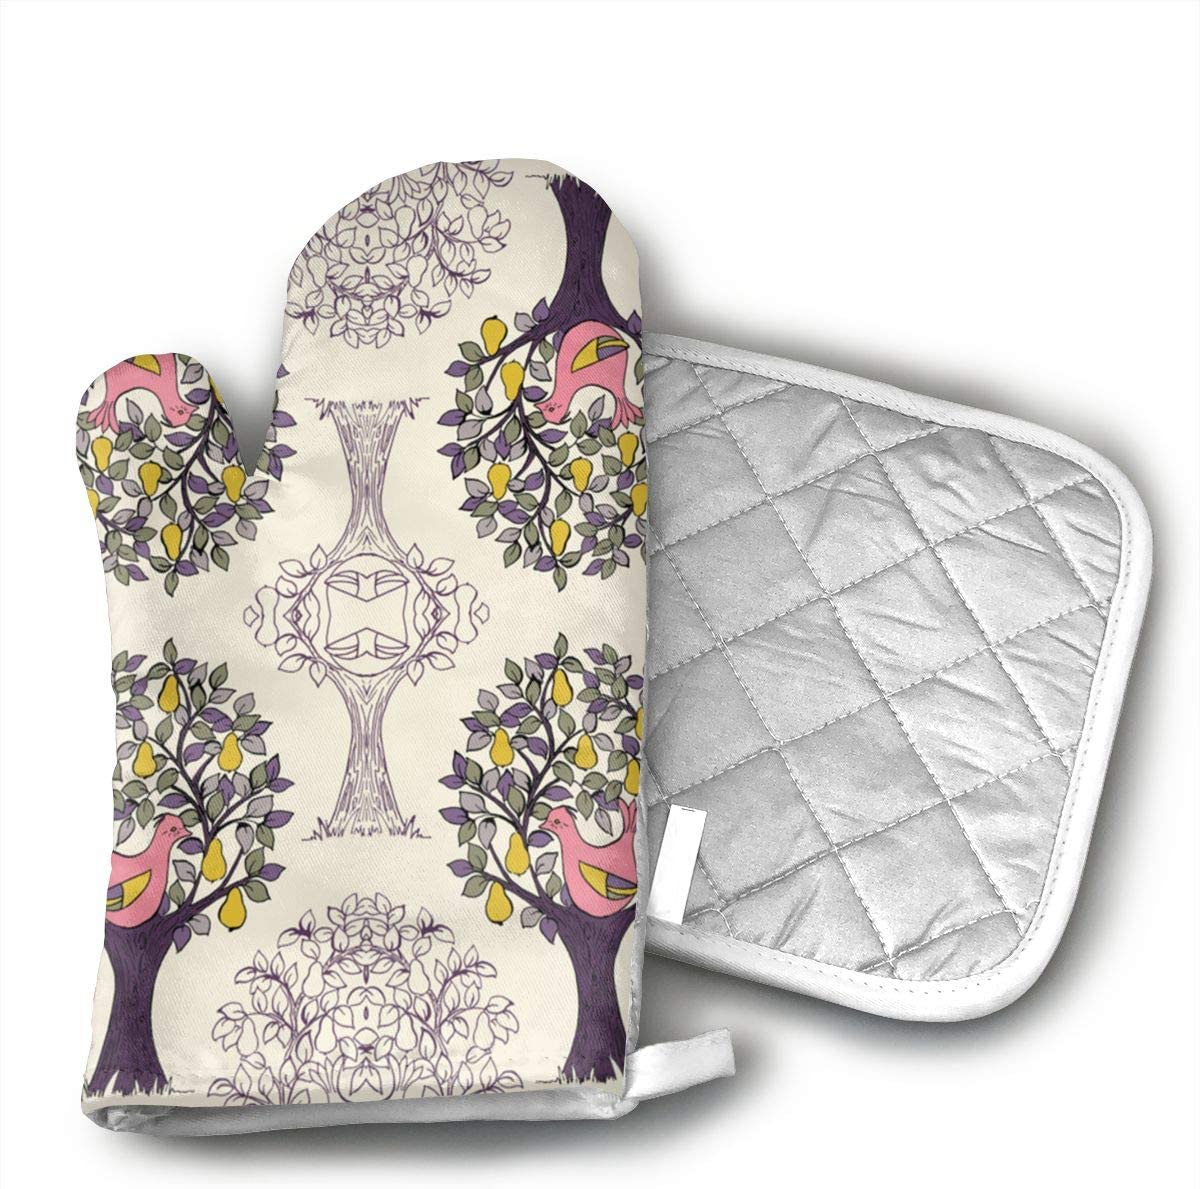 TUJABZA71 Partridge in A Pear Tree 2 Oven Gloves, Smart Home, Long, Mittens, Heat Resistant, Extra Thick, Quilted